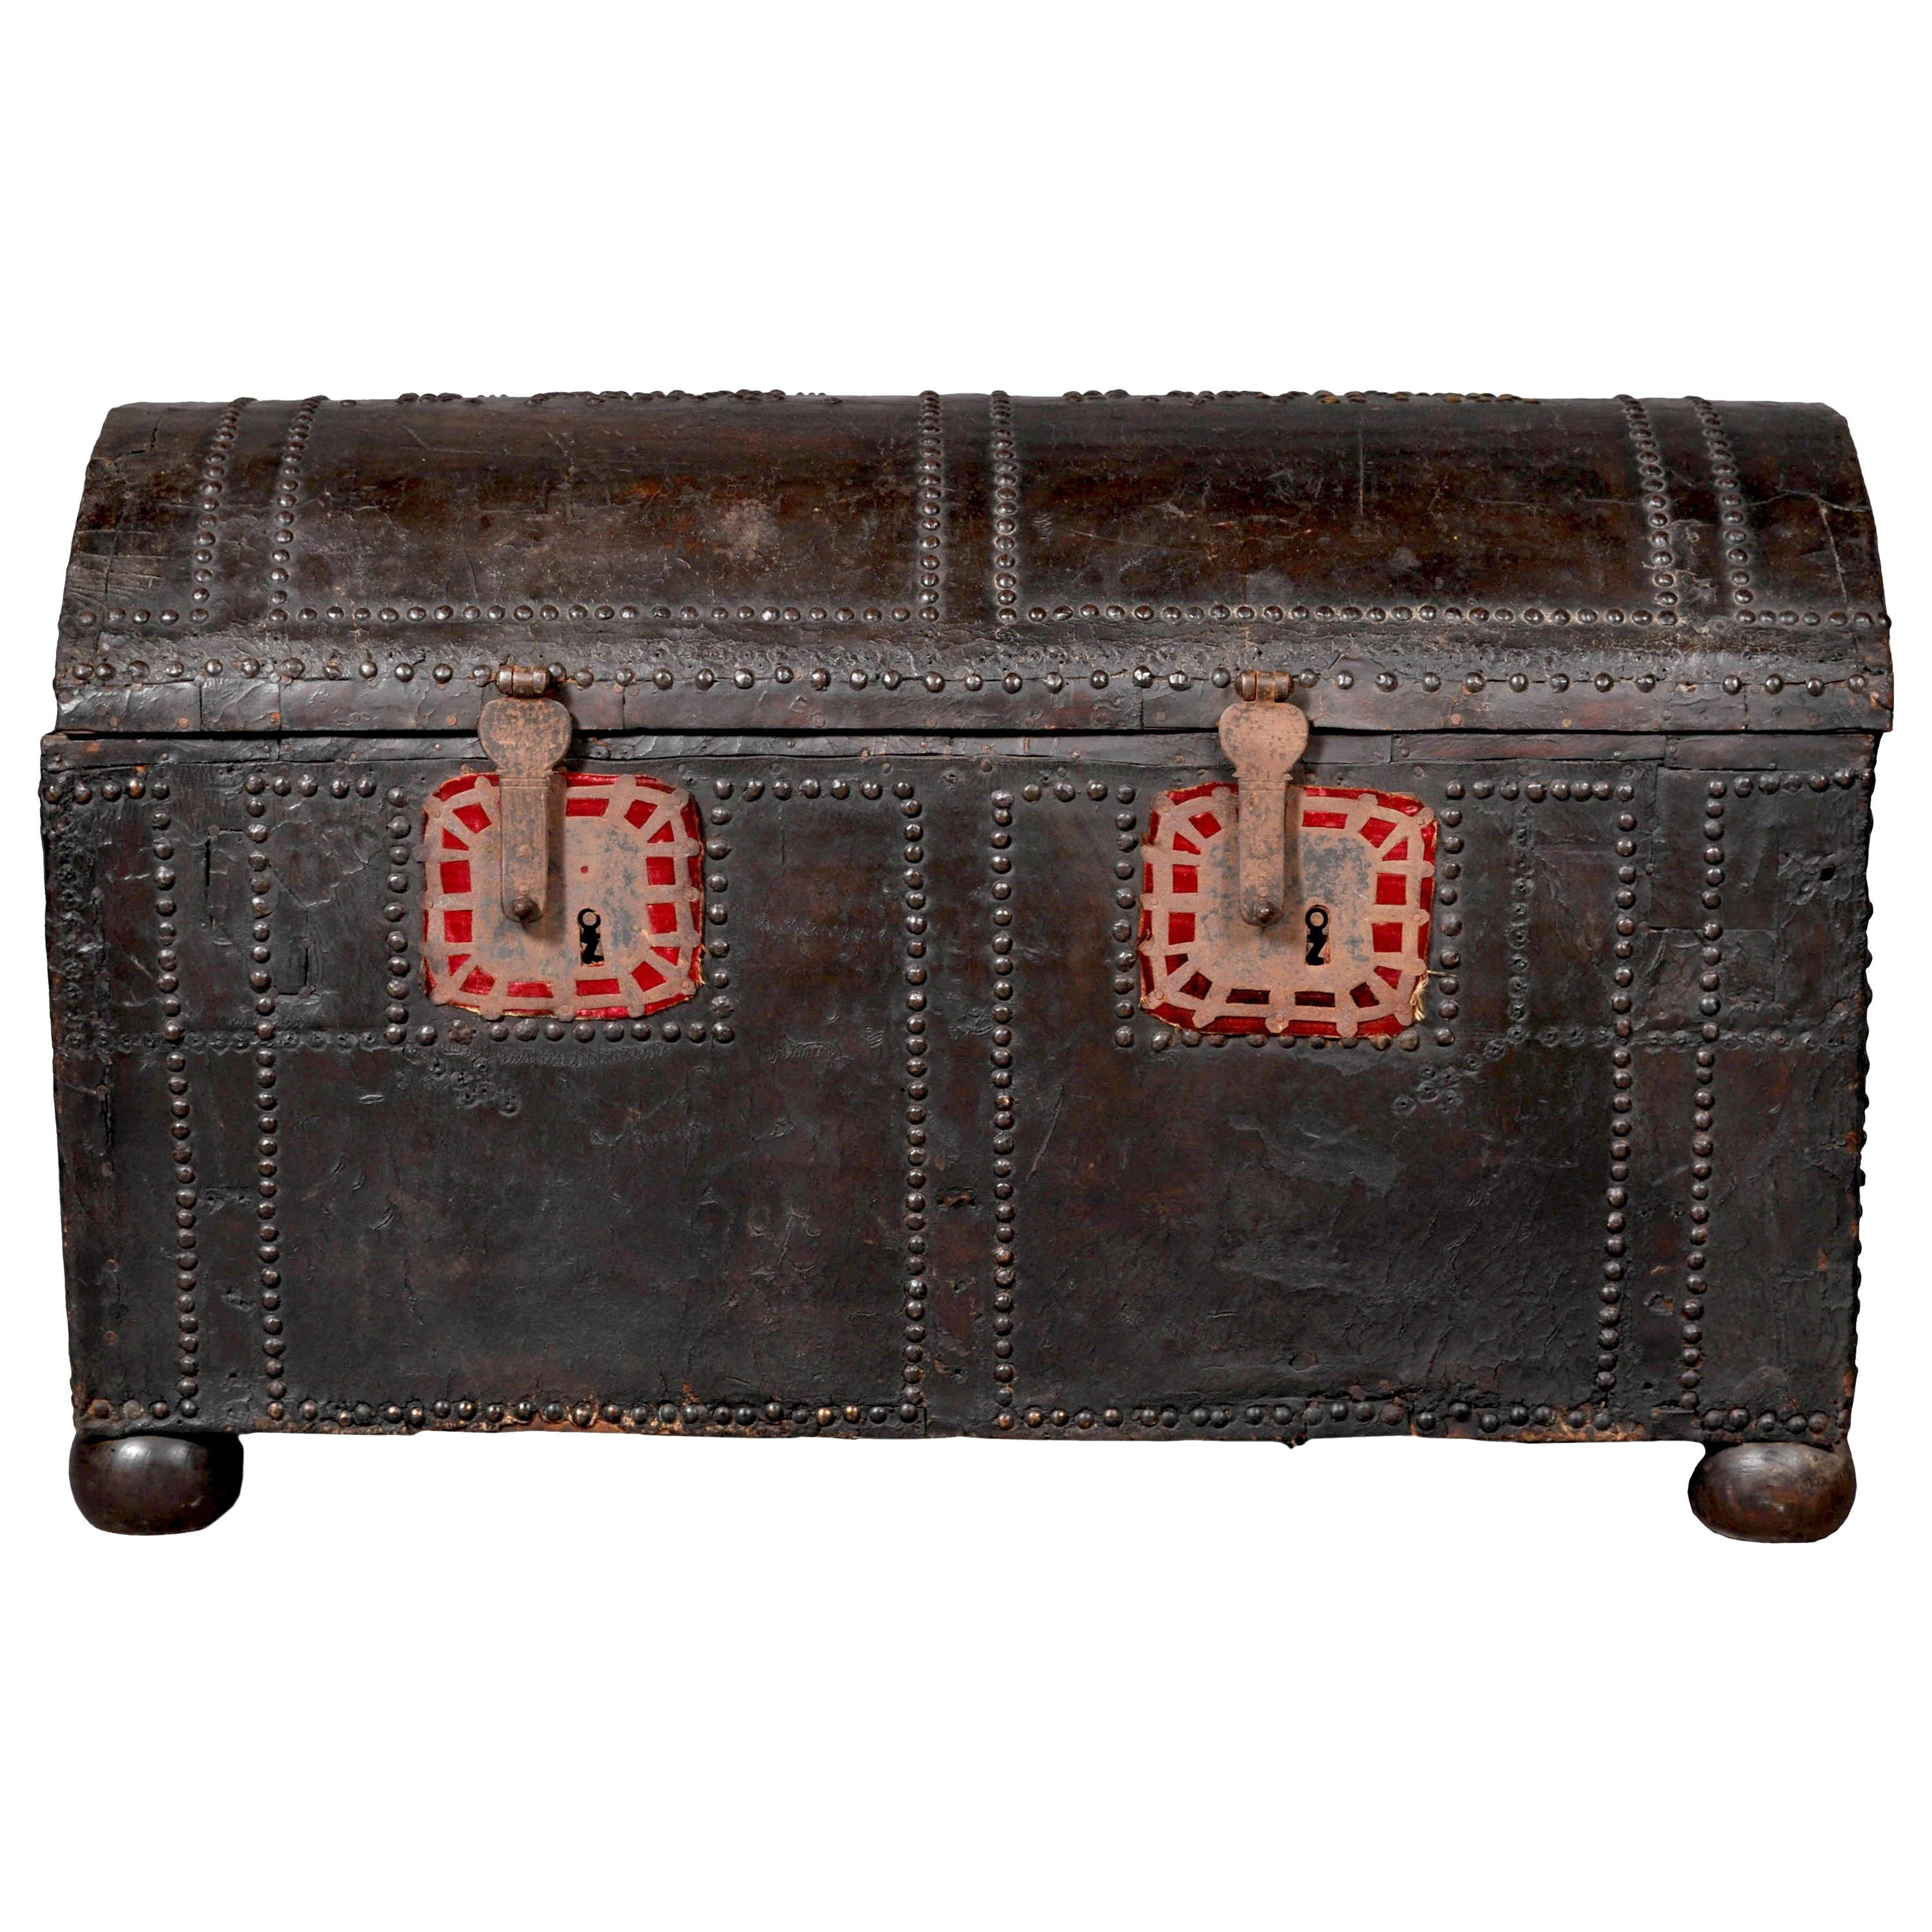 Antique Spanish Baroque Leather and Studded Wedding Trunk / Coffer, circa 1700